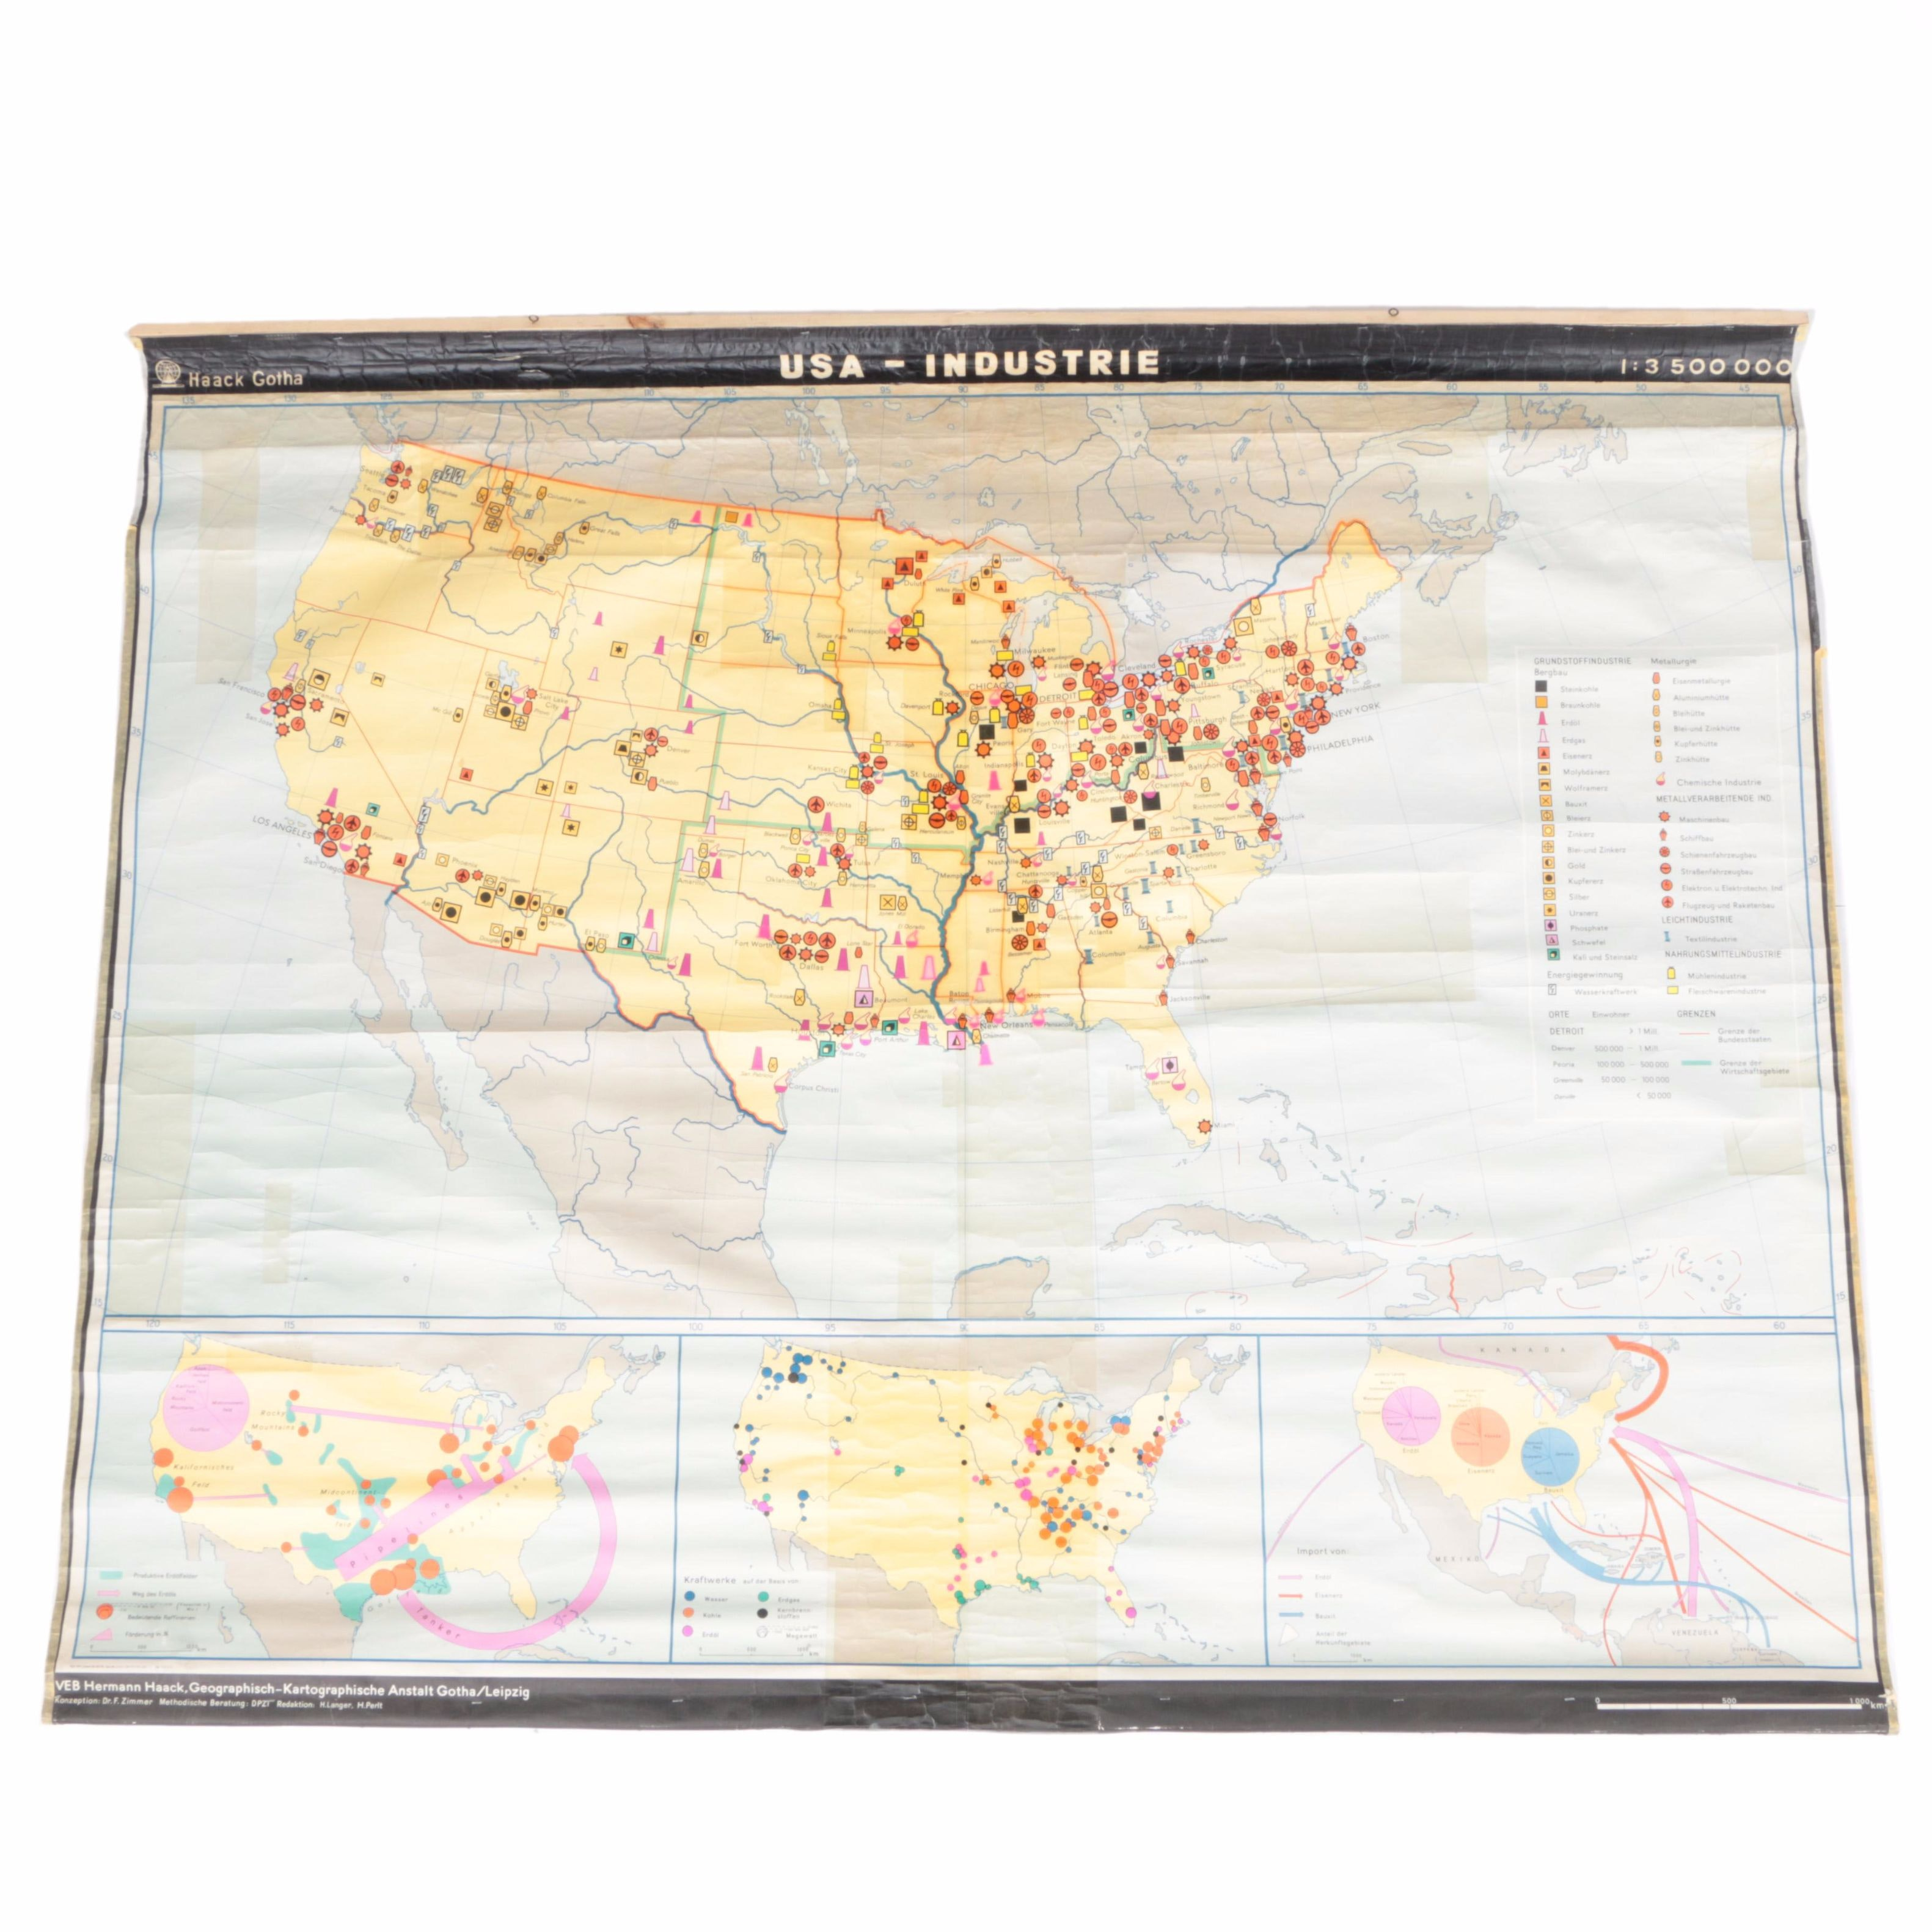 Haack Gotha Vintage Industrial Map of the United States